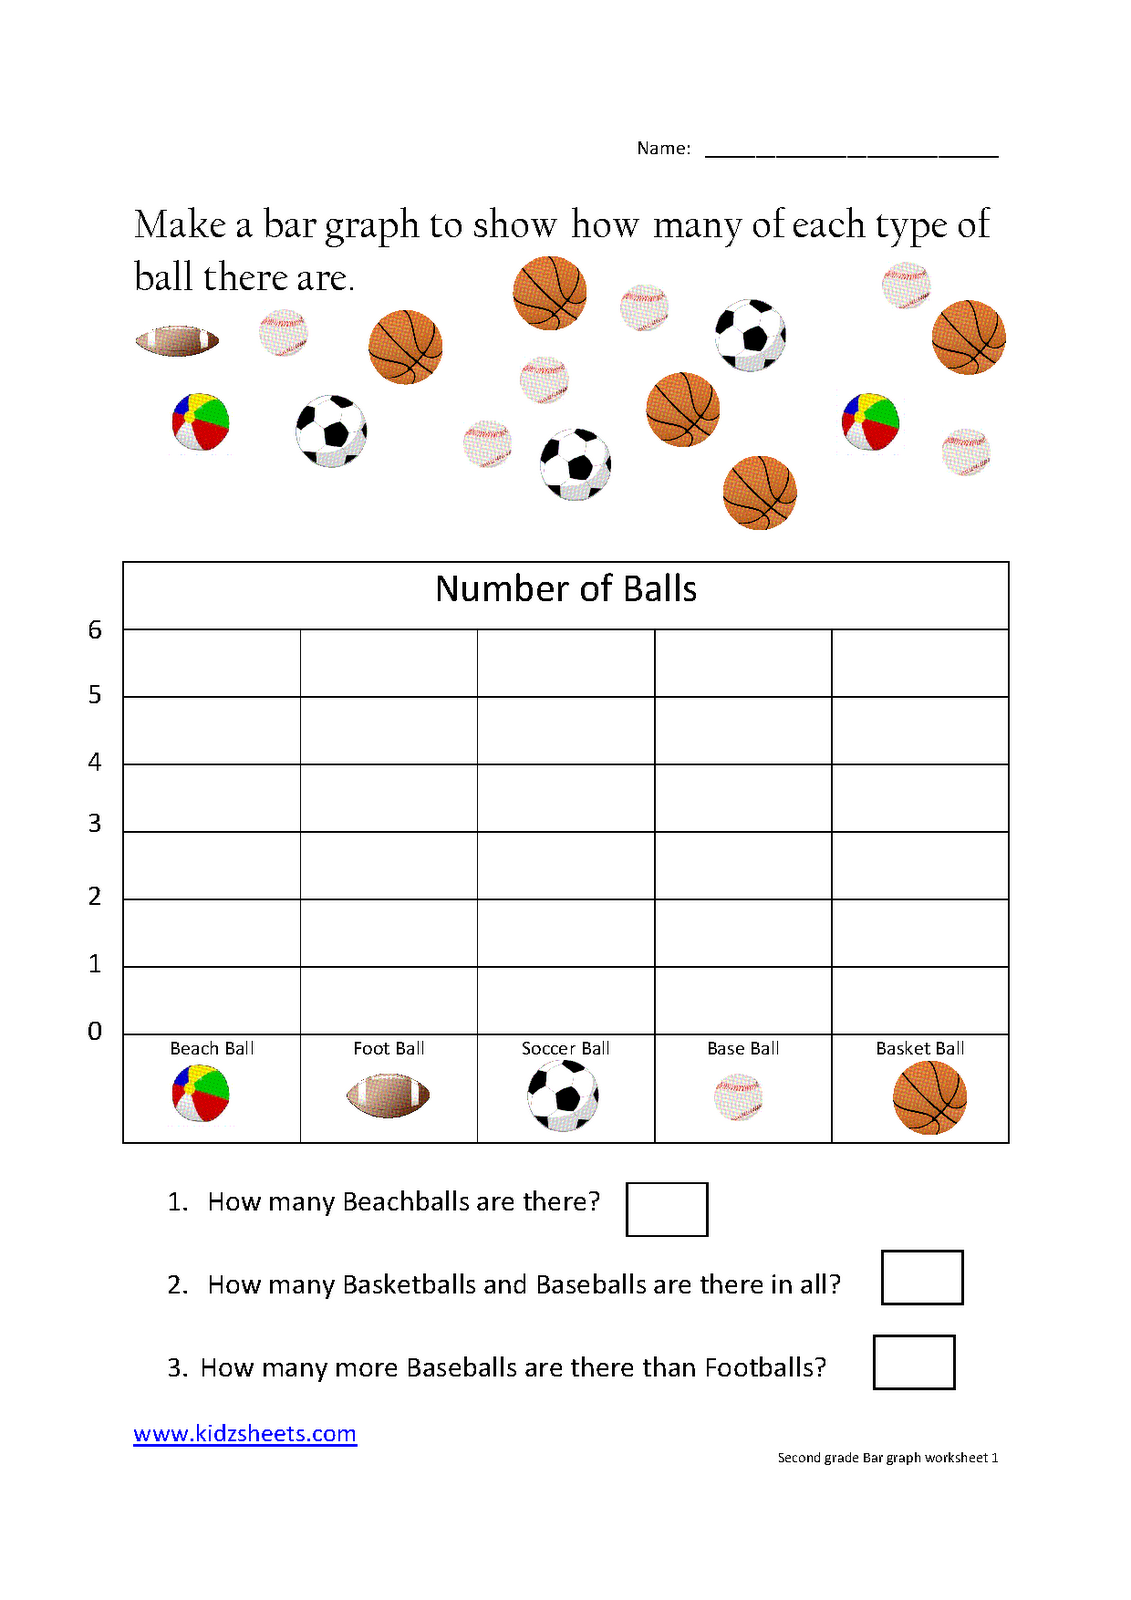 Printables 2nd Grade Worksheets Printable kidz worksheets second grade bar graph worksheet1 graph